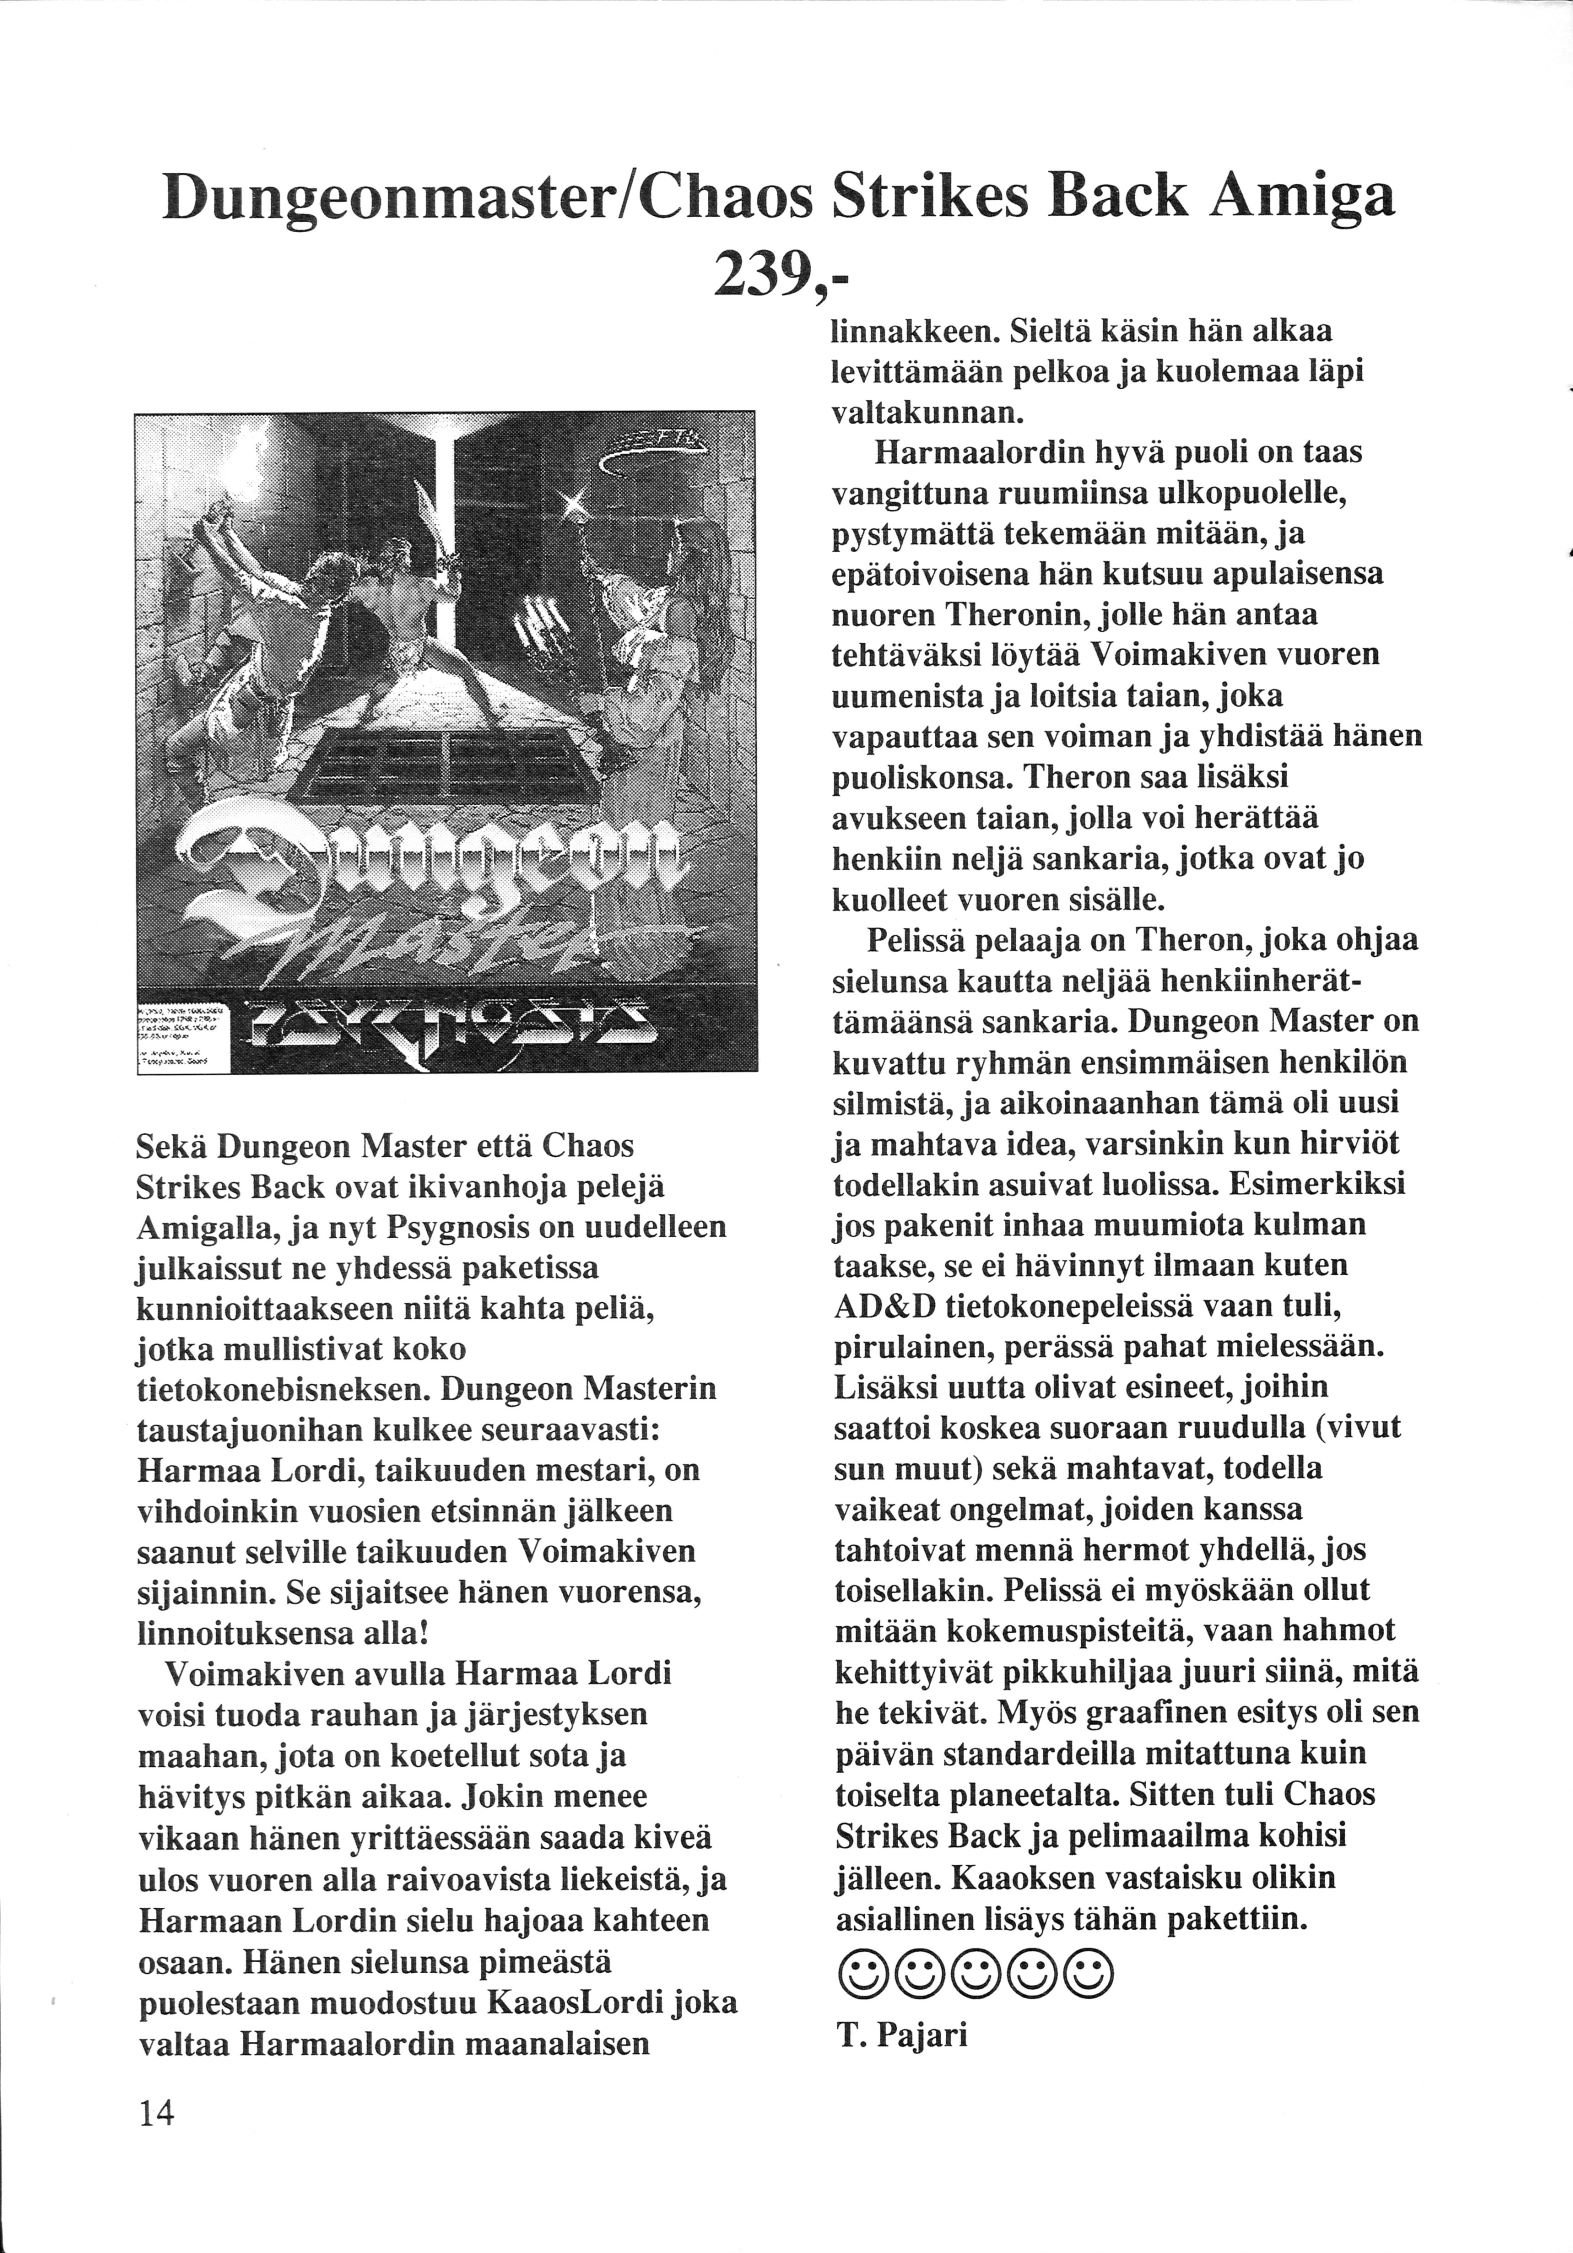 Dungeon Master And Chaos Strikes Back for Amiga Review published in Finnish magazine 'Com Club', Issue #5 November 1992, Page 14